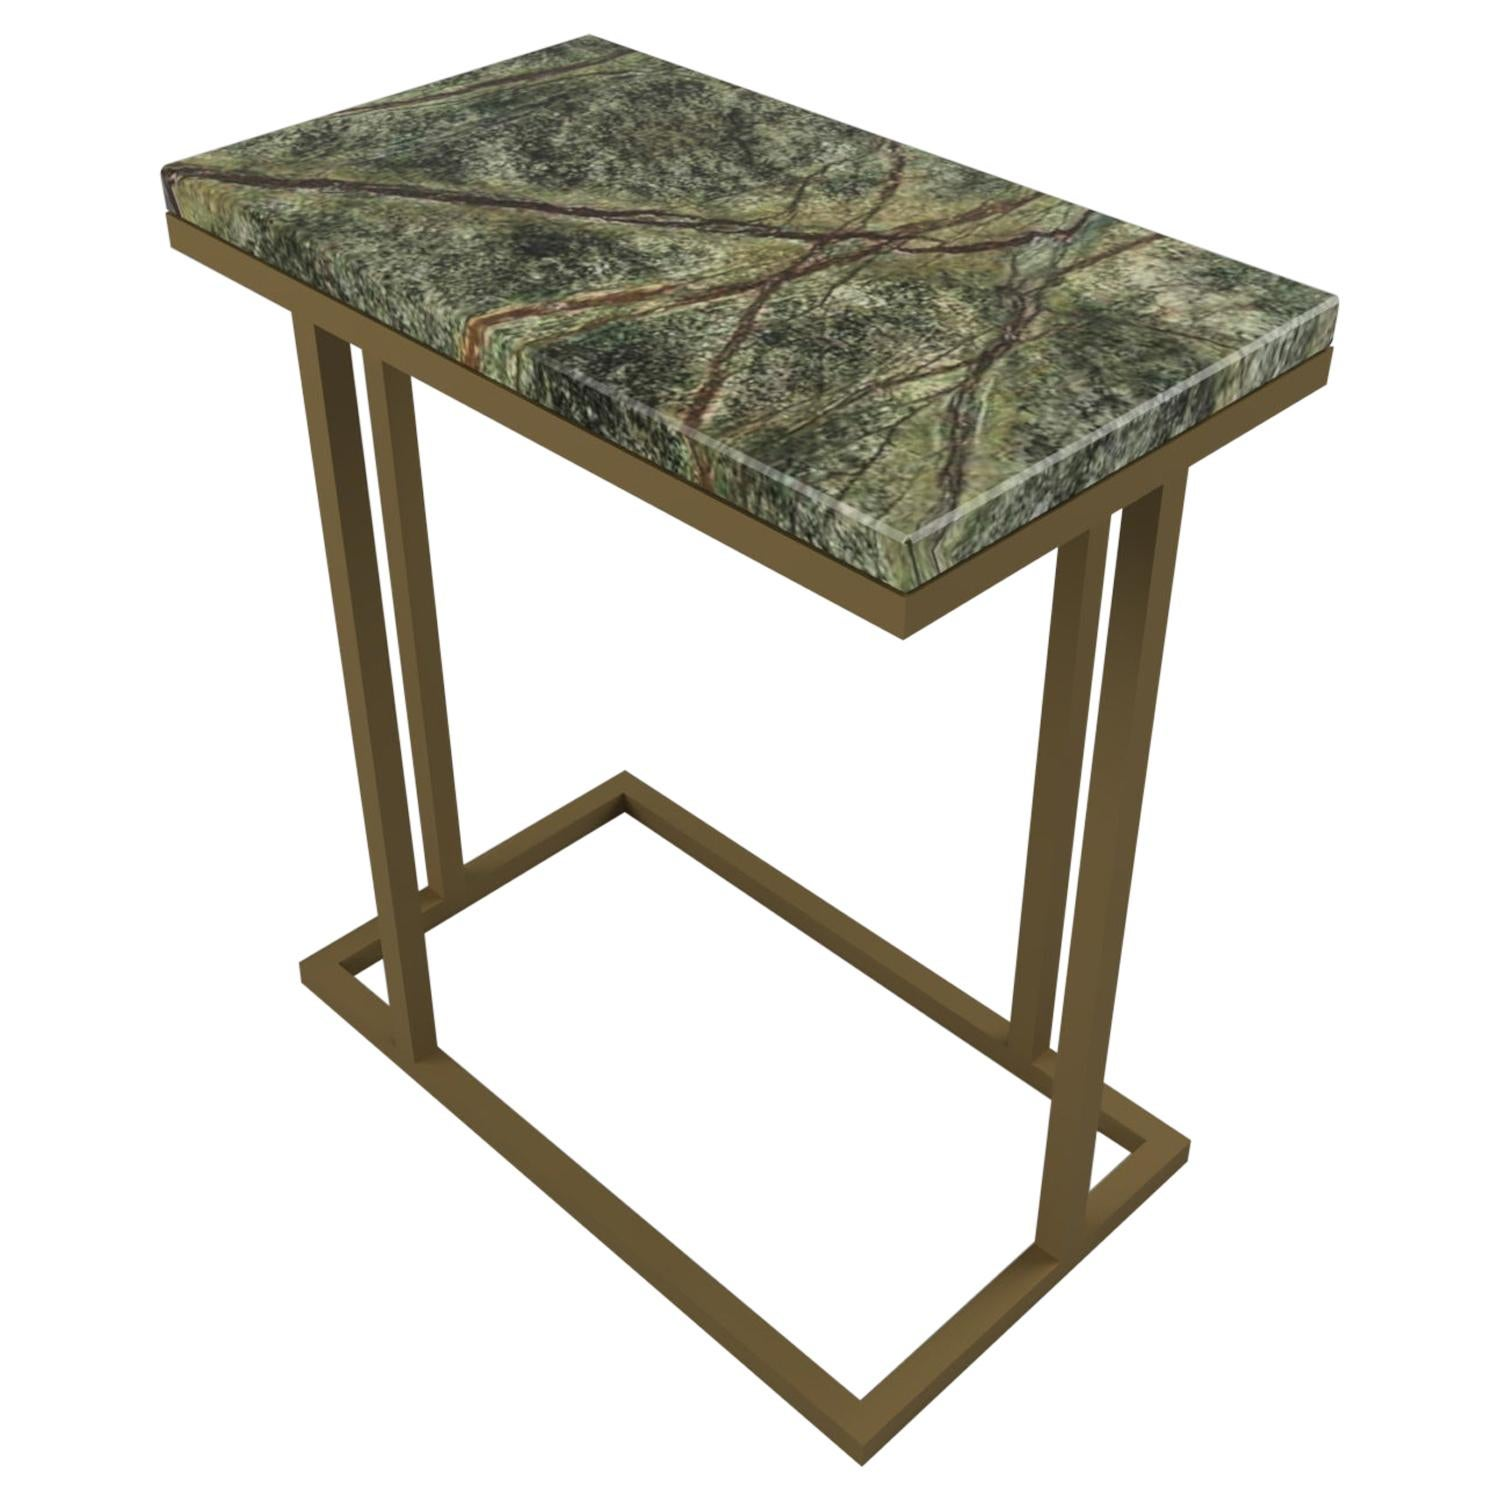 Art Deco Inspired Elio II Slim Side Table in Brass Tint and Marble Surface